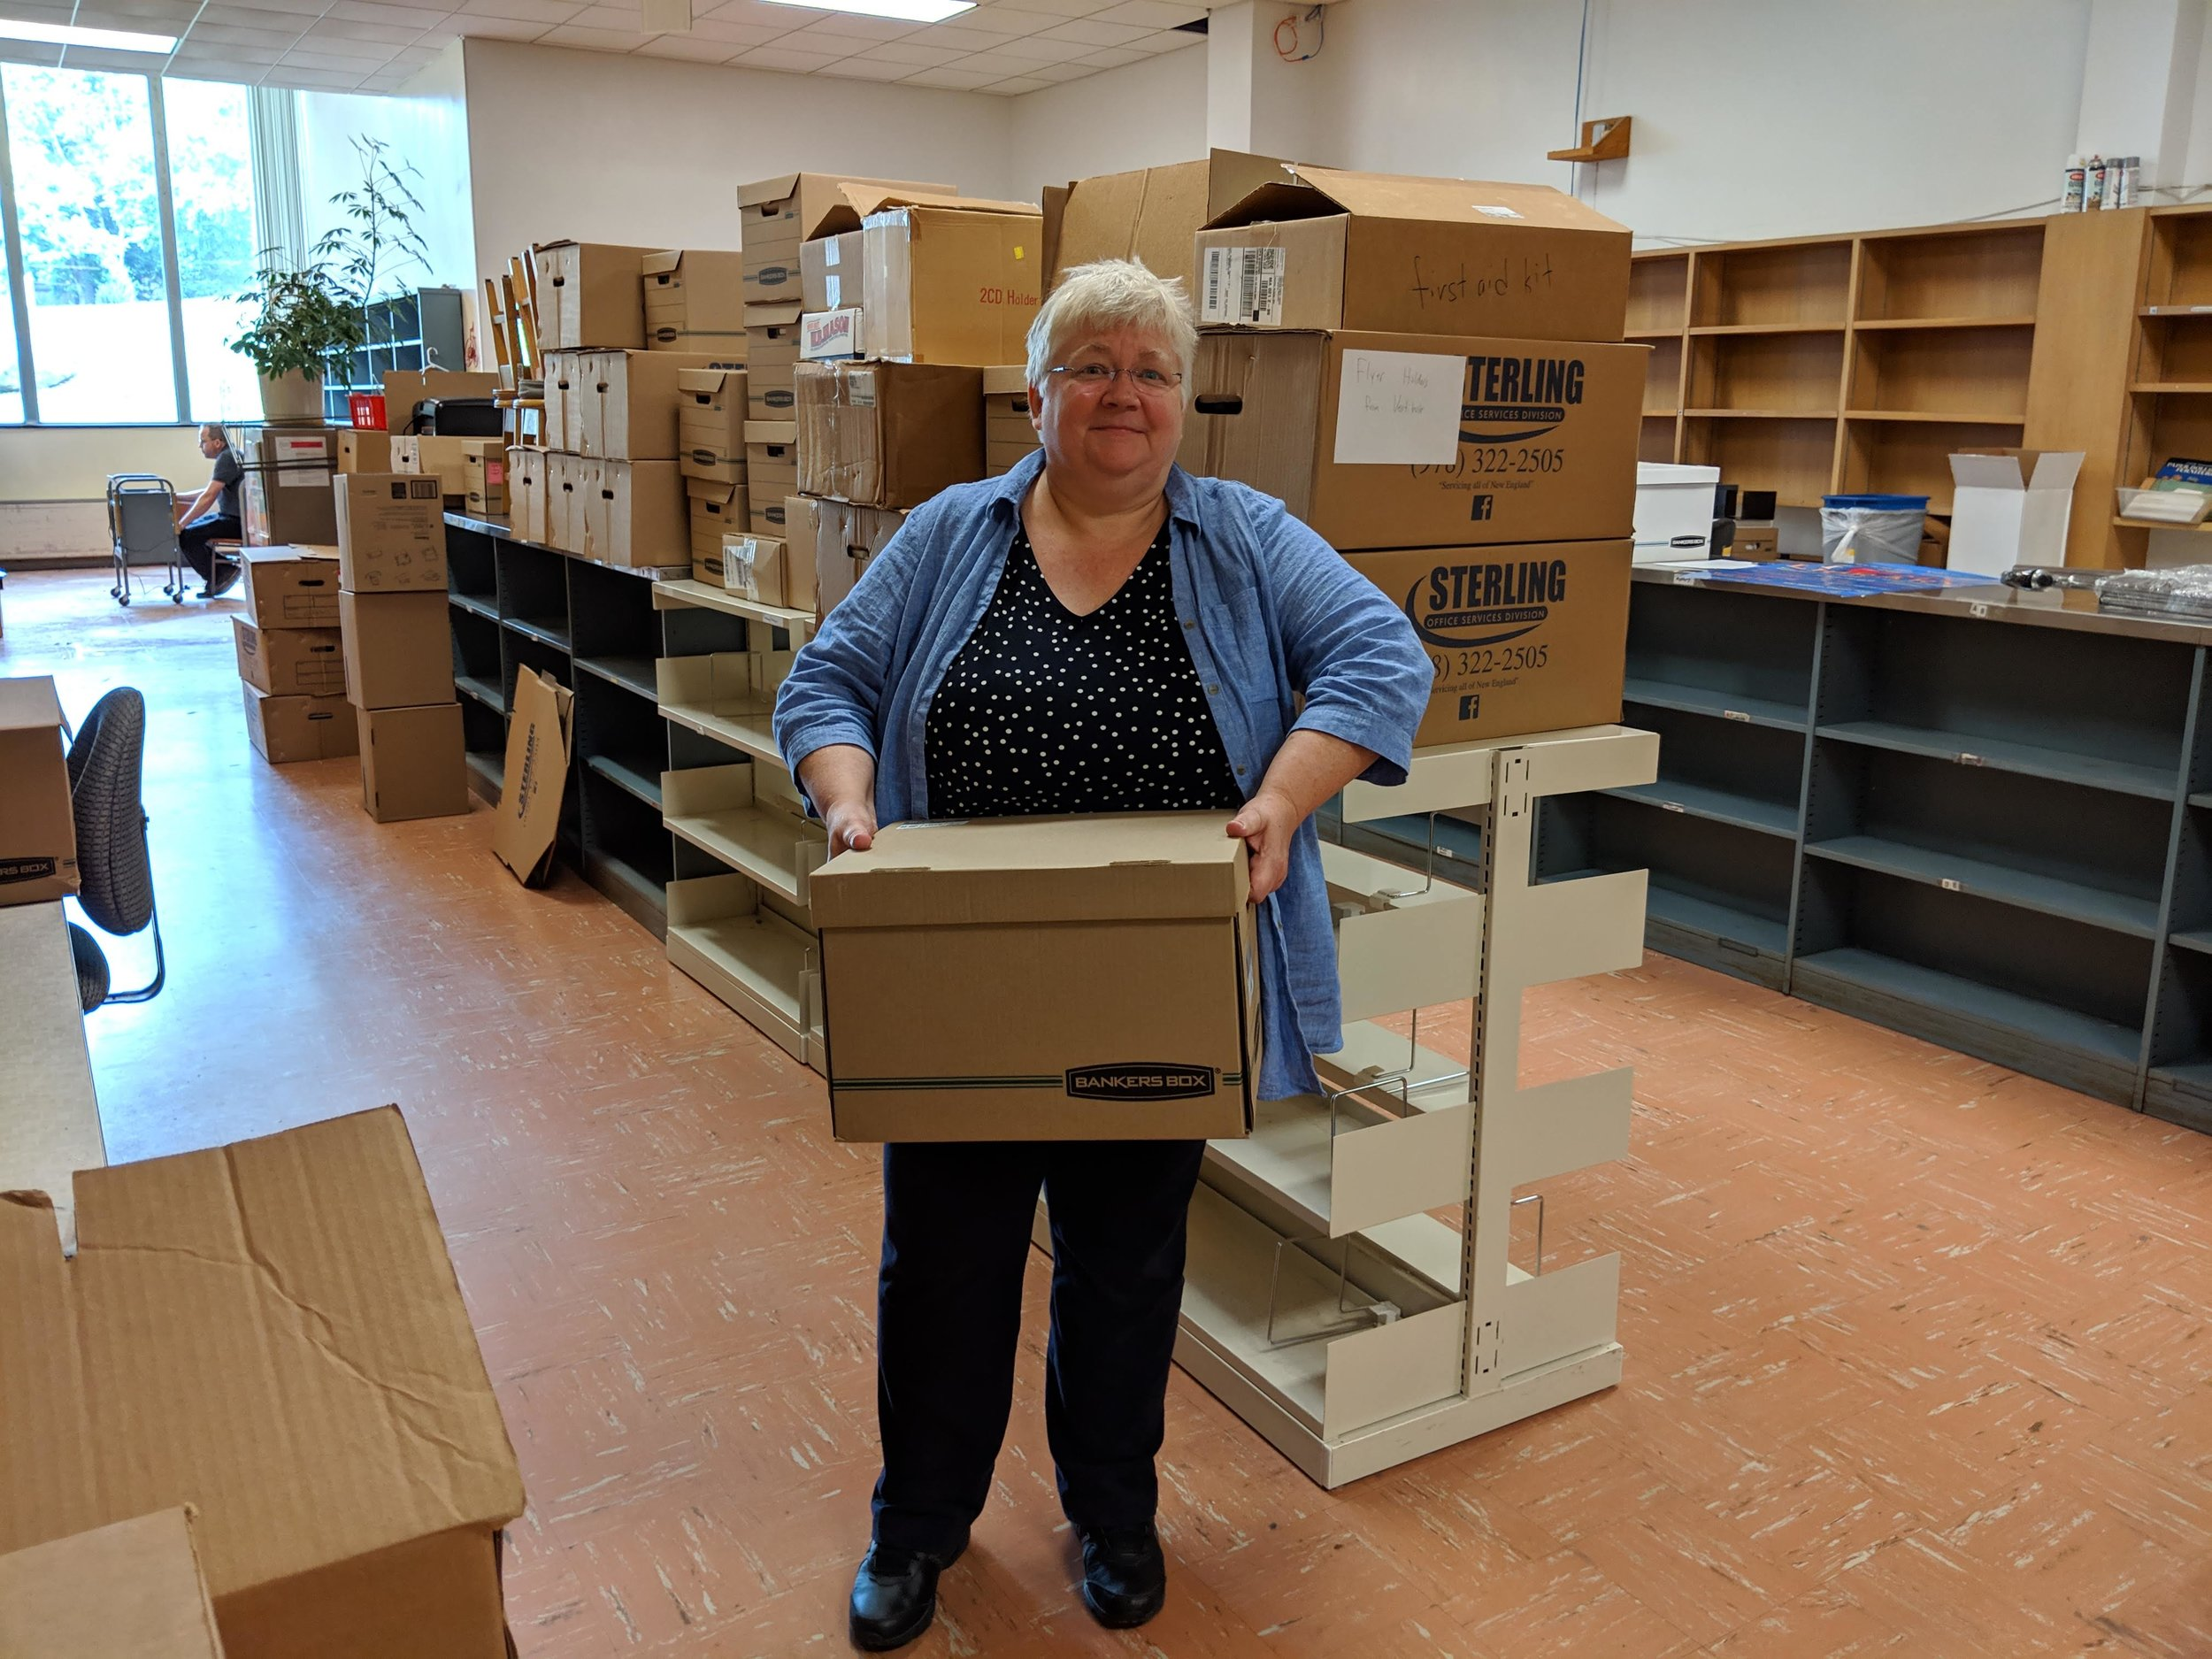 Packing and moving the Medford Library.